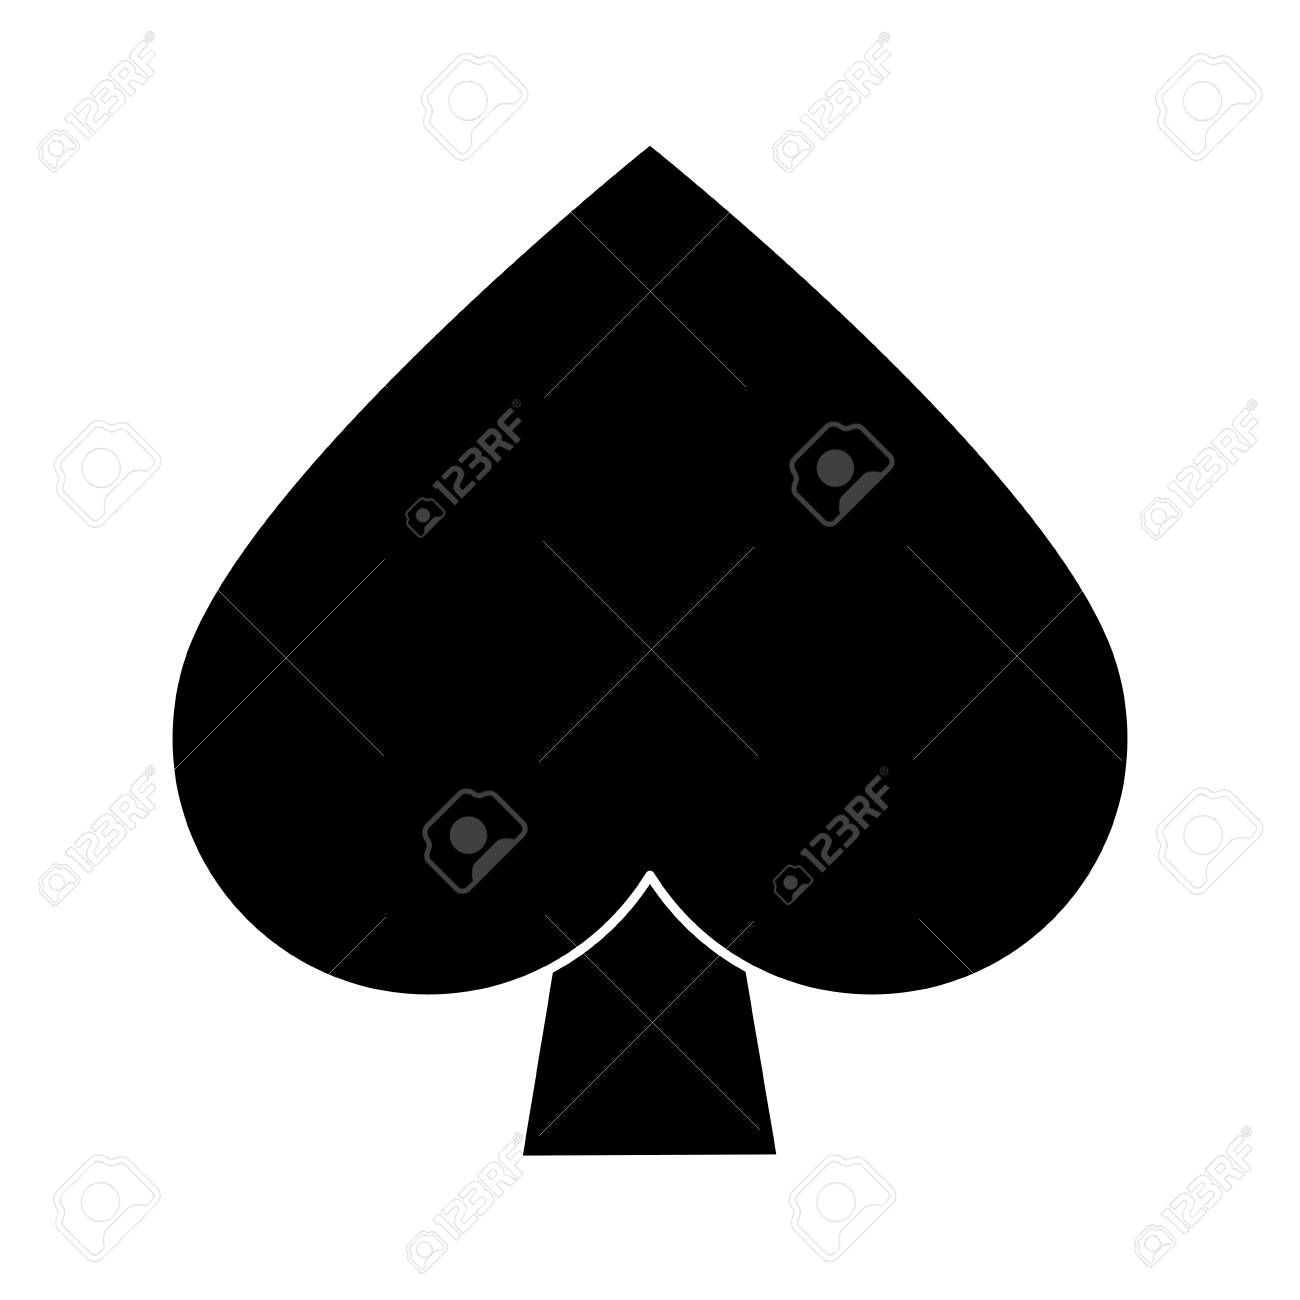 ace symbol isolated icon vector illustration graphic design royalty